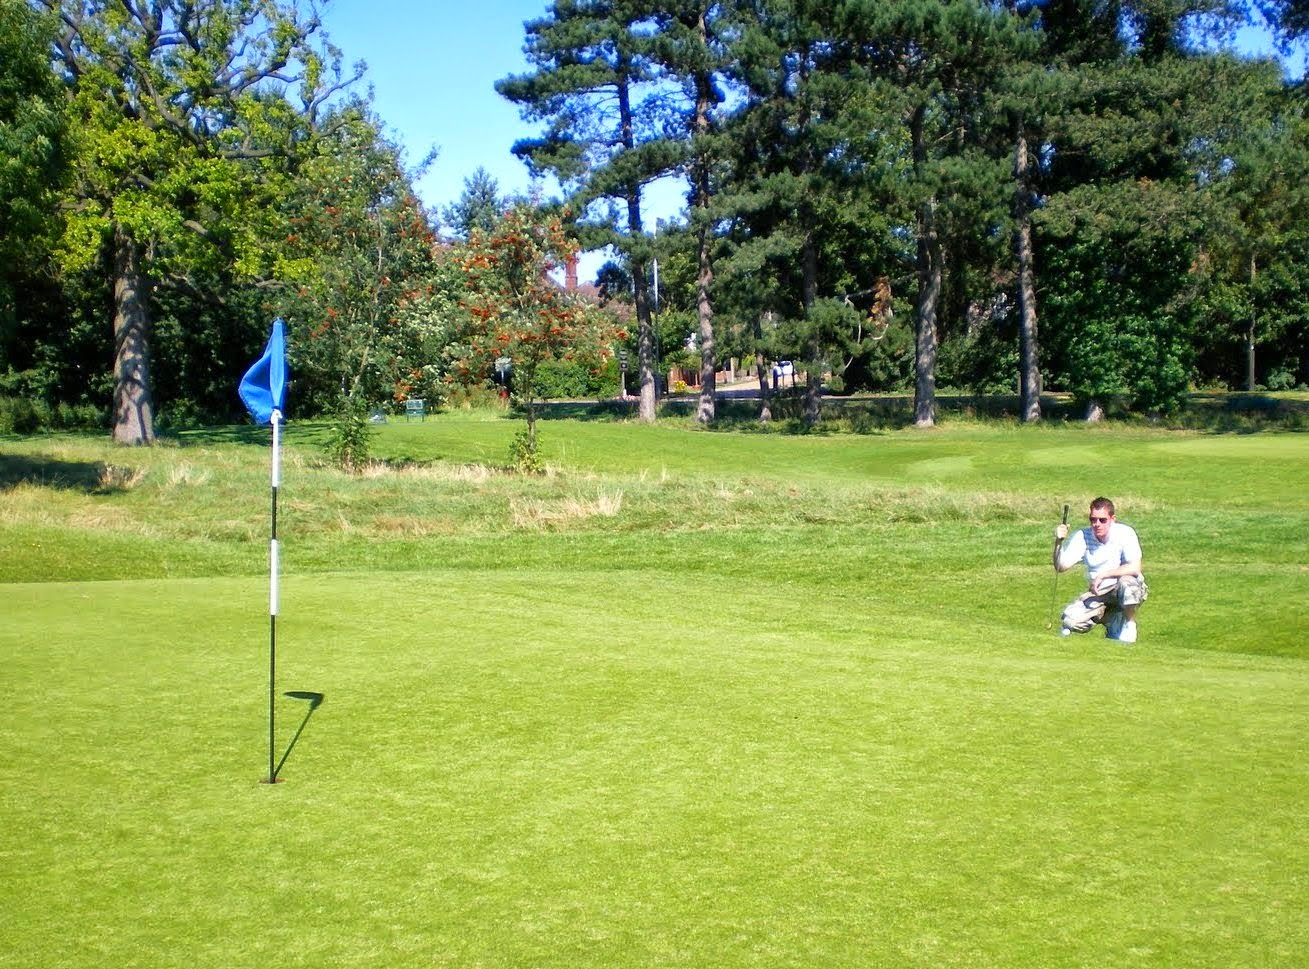 Playing Golf at Stockwood Park's Mini Golf course in Luton